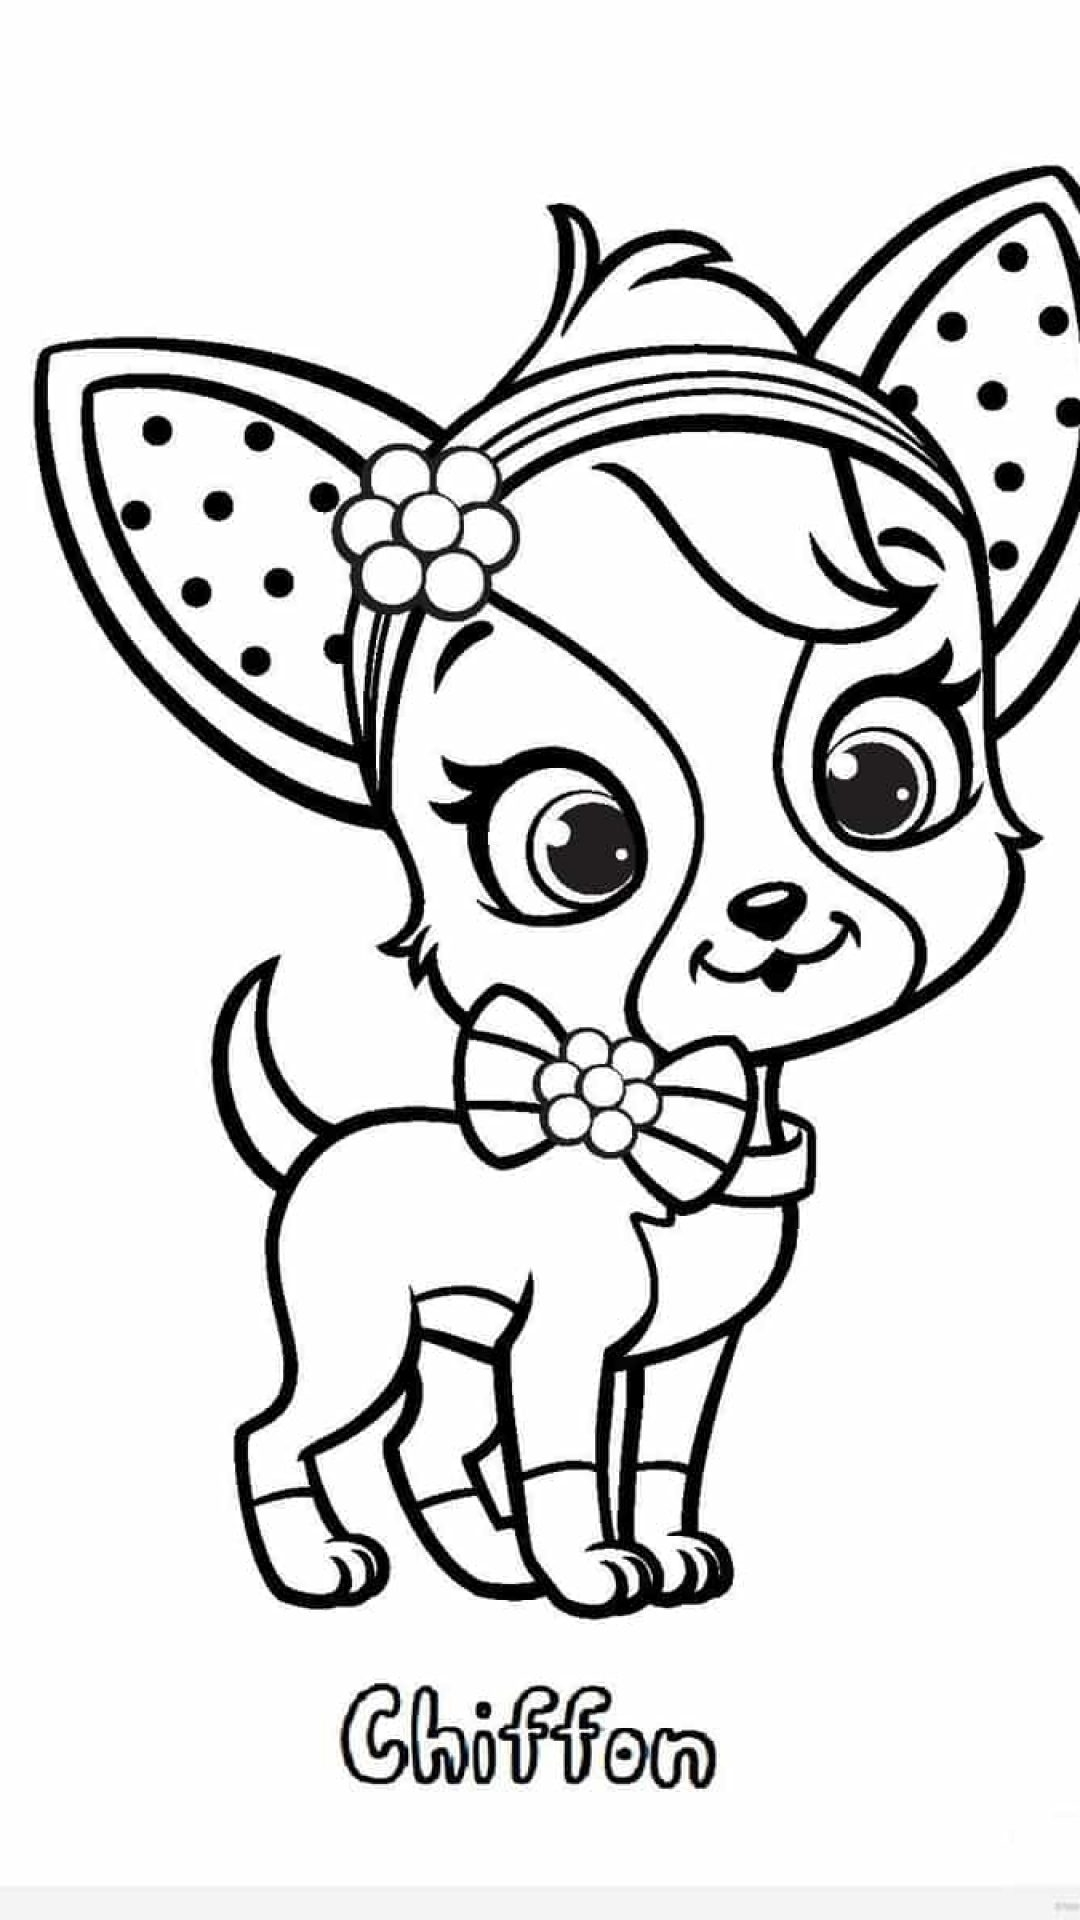 Free Printable Strawberry Shortcake Coloring Pages At Getdrawings